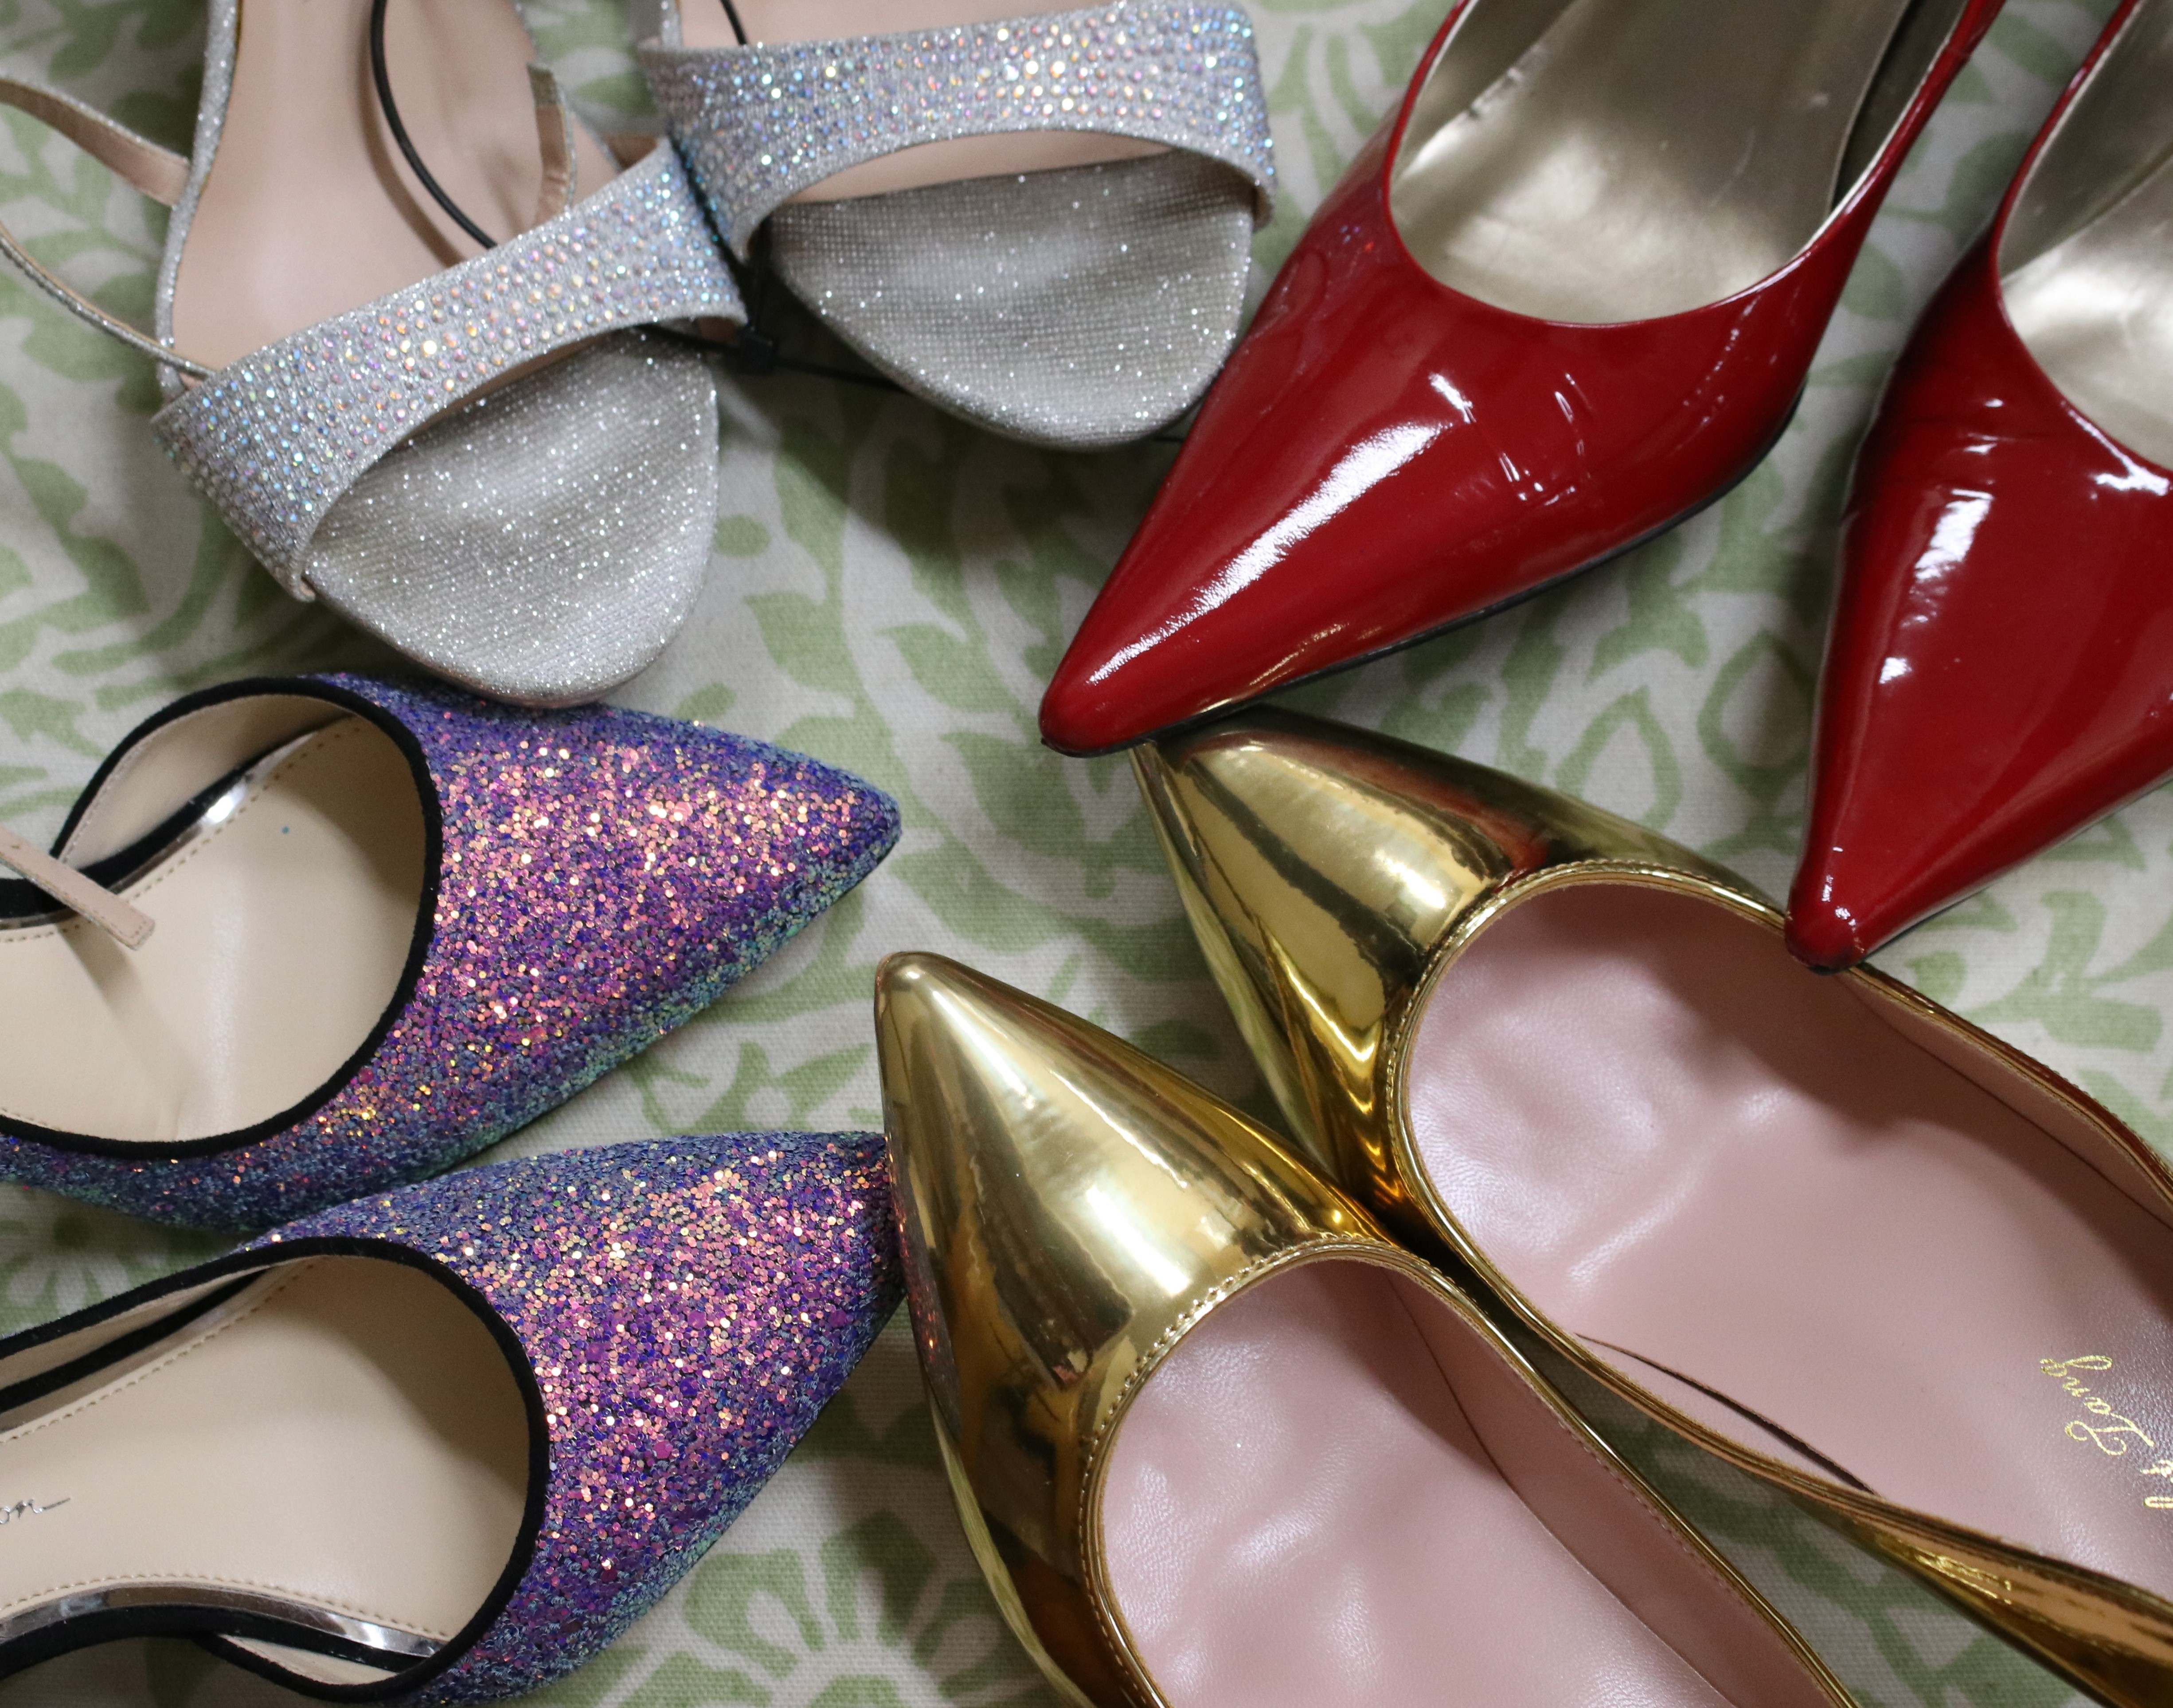 All Shoes 1/2 Price Week of 7/19-24